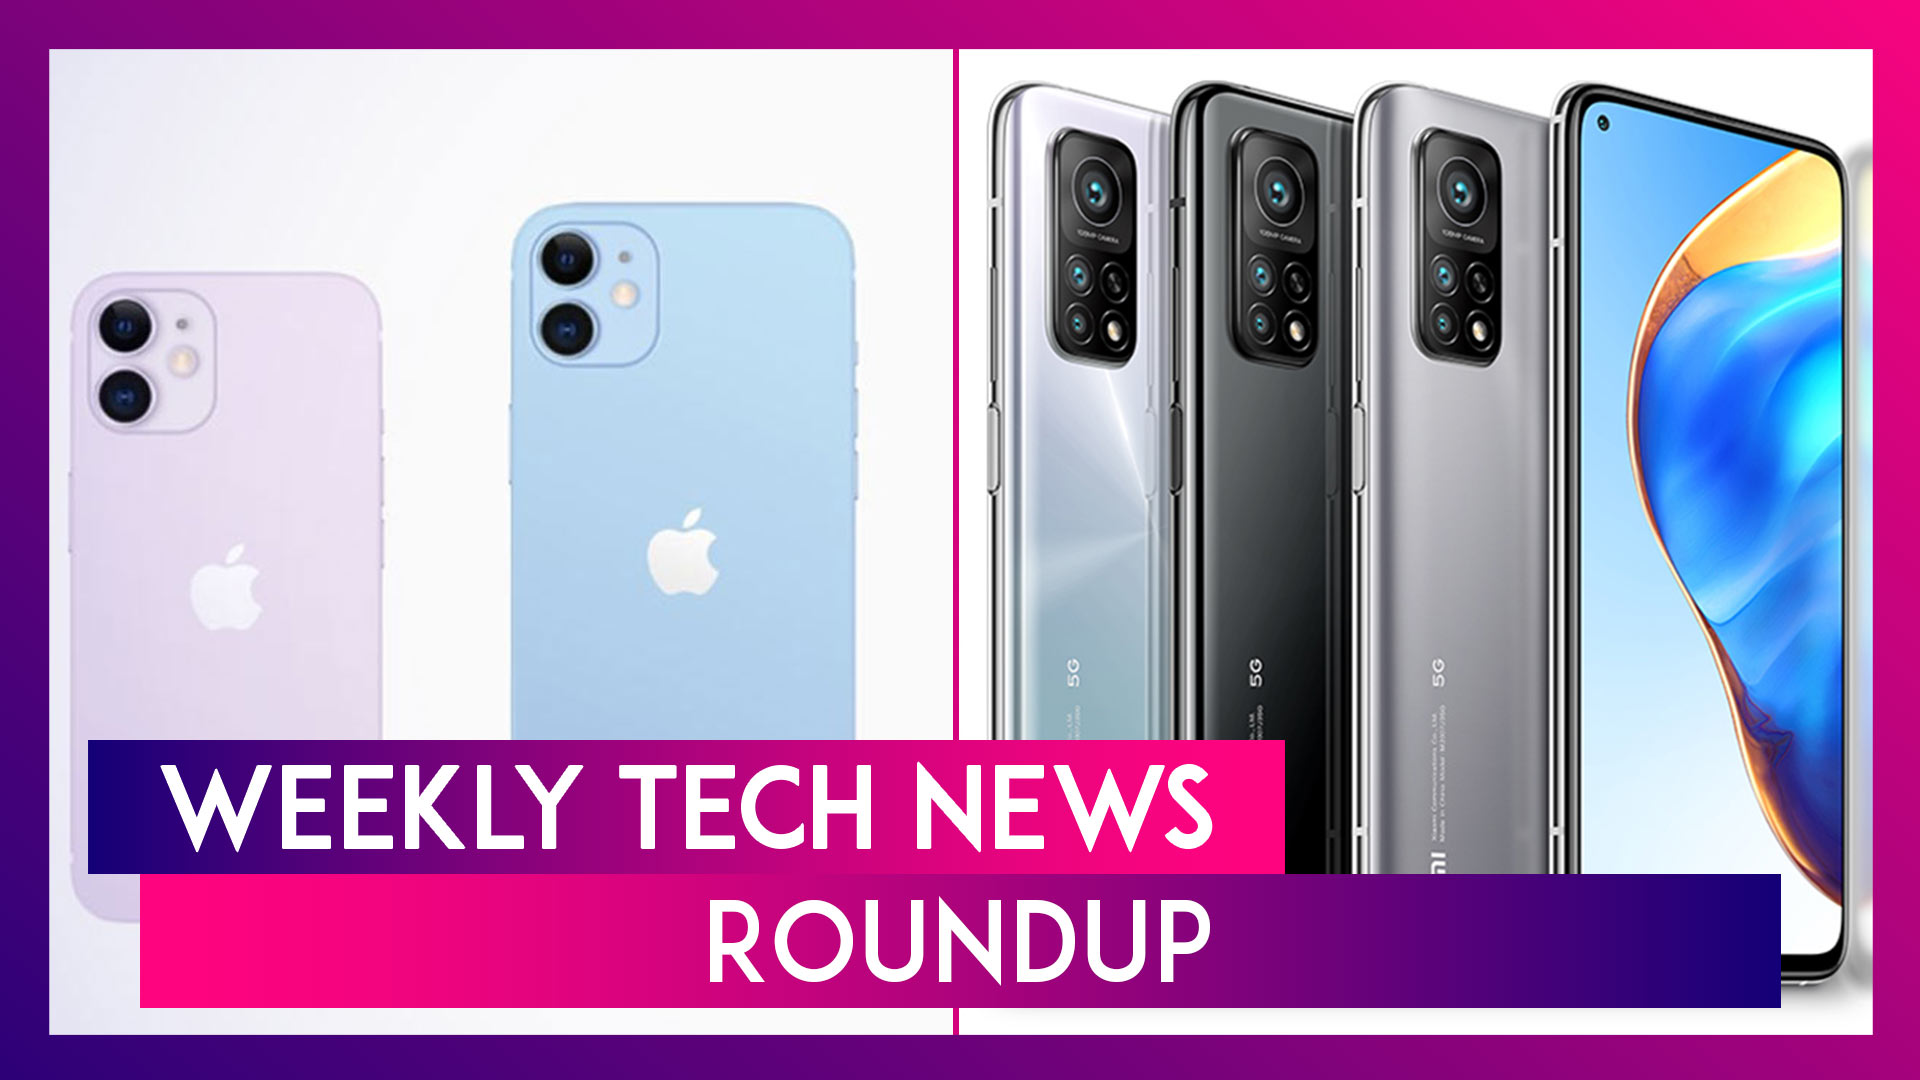 Weekly Tech Roundup: iPhone 12 Series, OnePlus 8T, Vivo V20, Oppo F17 Pro, Mi 10T Series & More